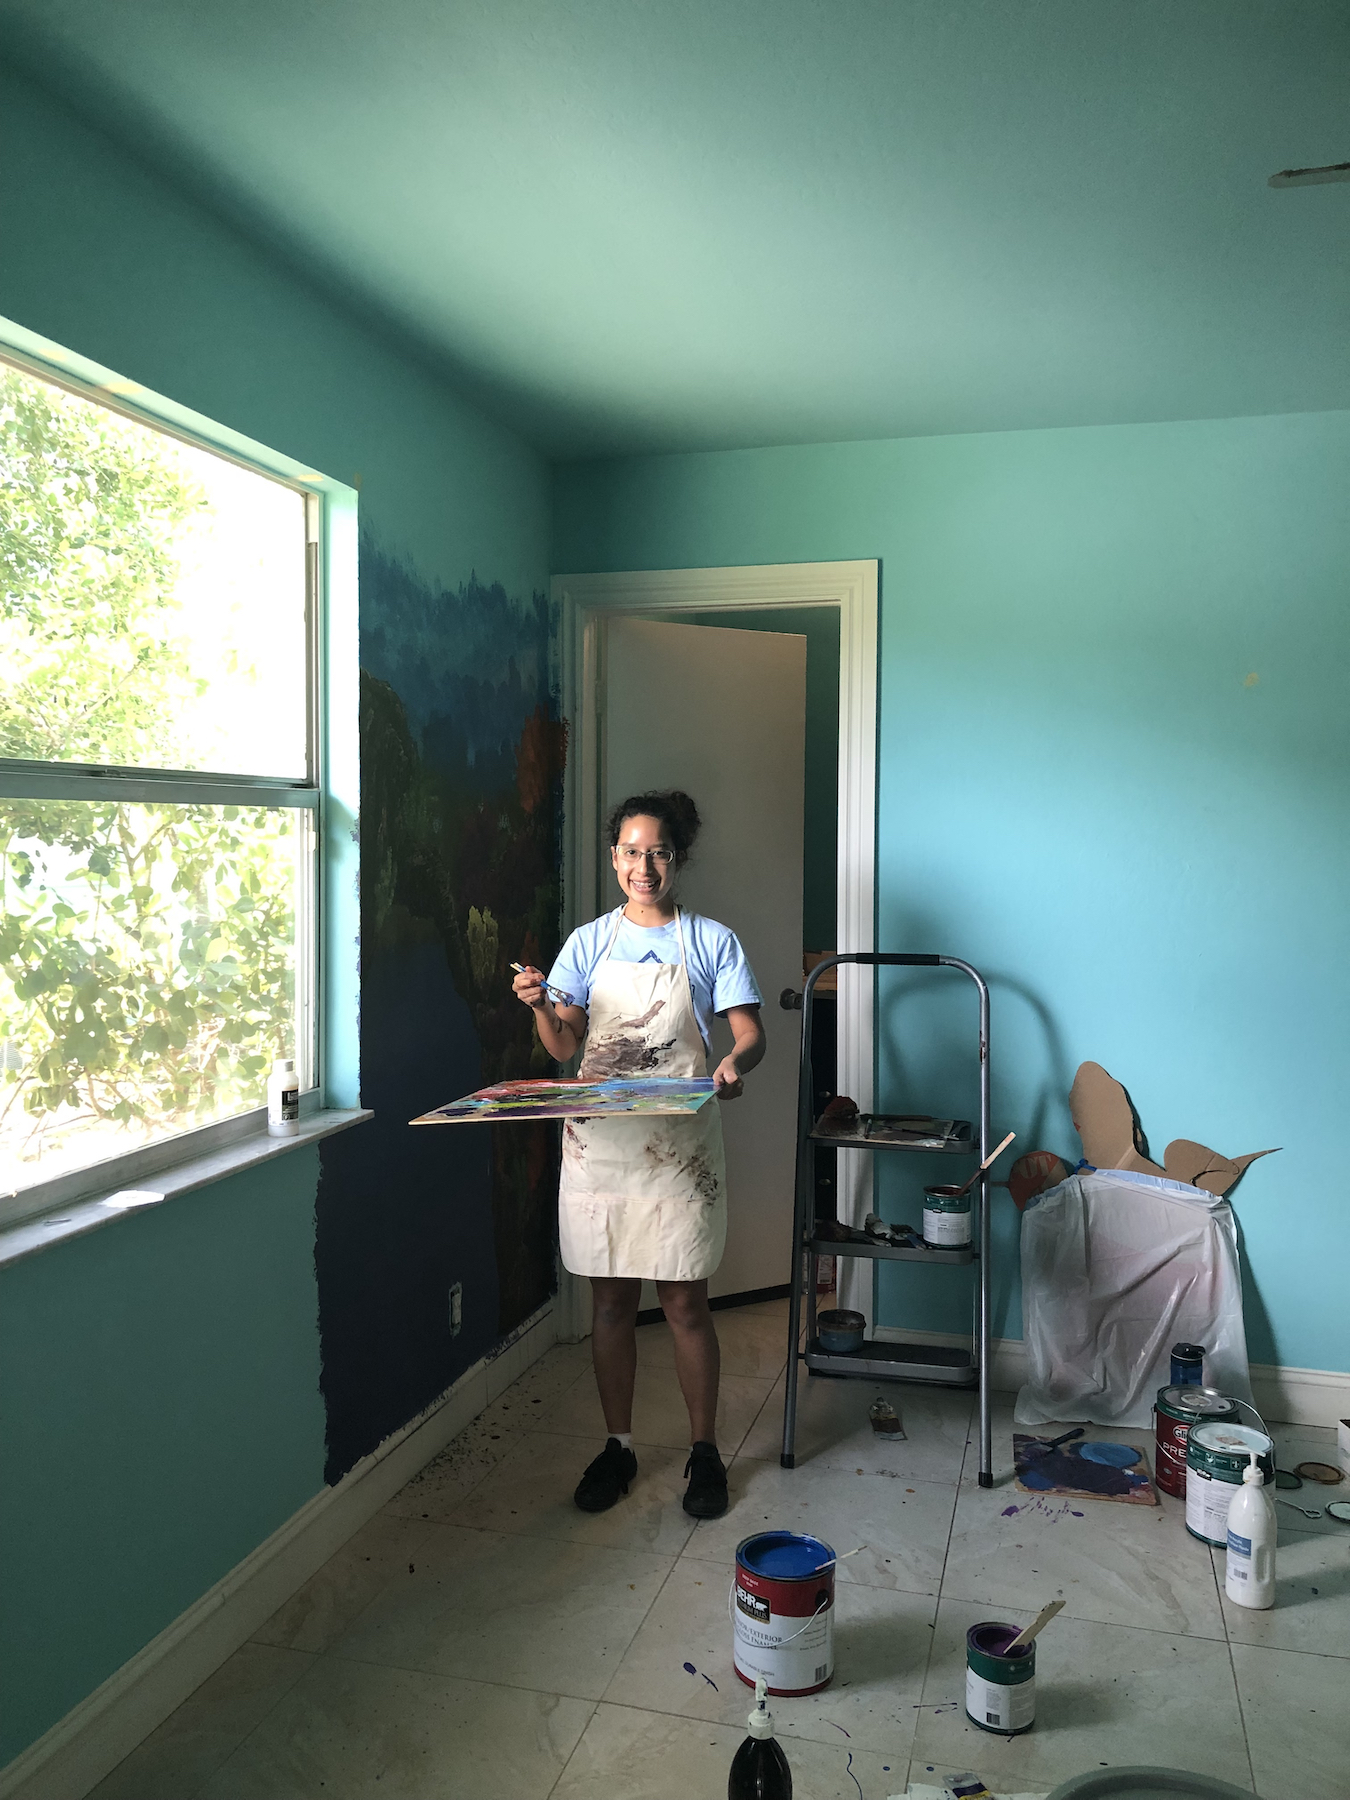 Barbara Del Castillo, 16, shared her talents painting murals at Valerie's House new home in Naples.